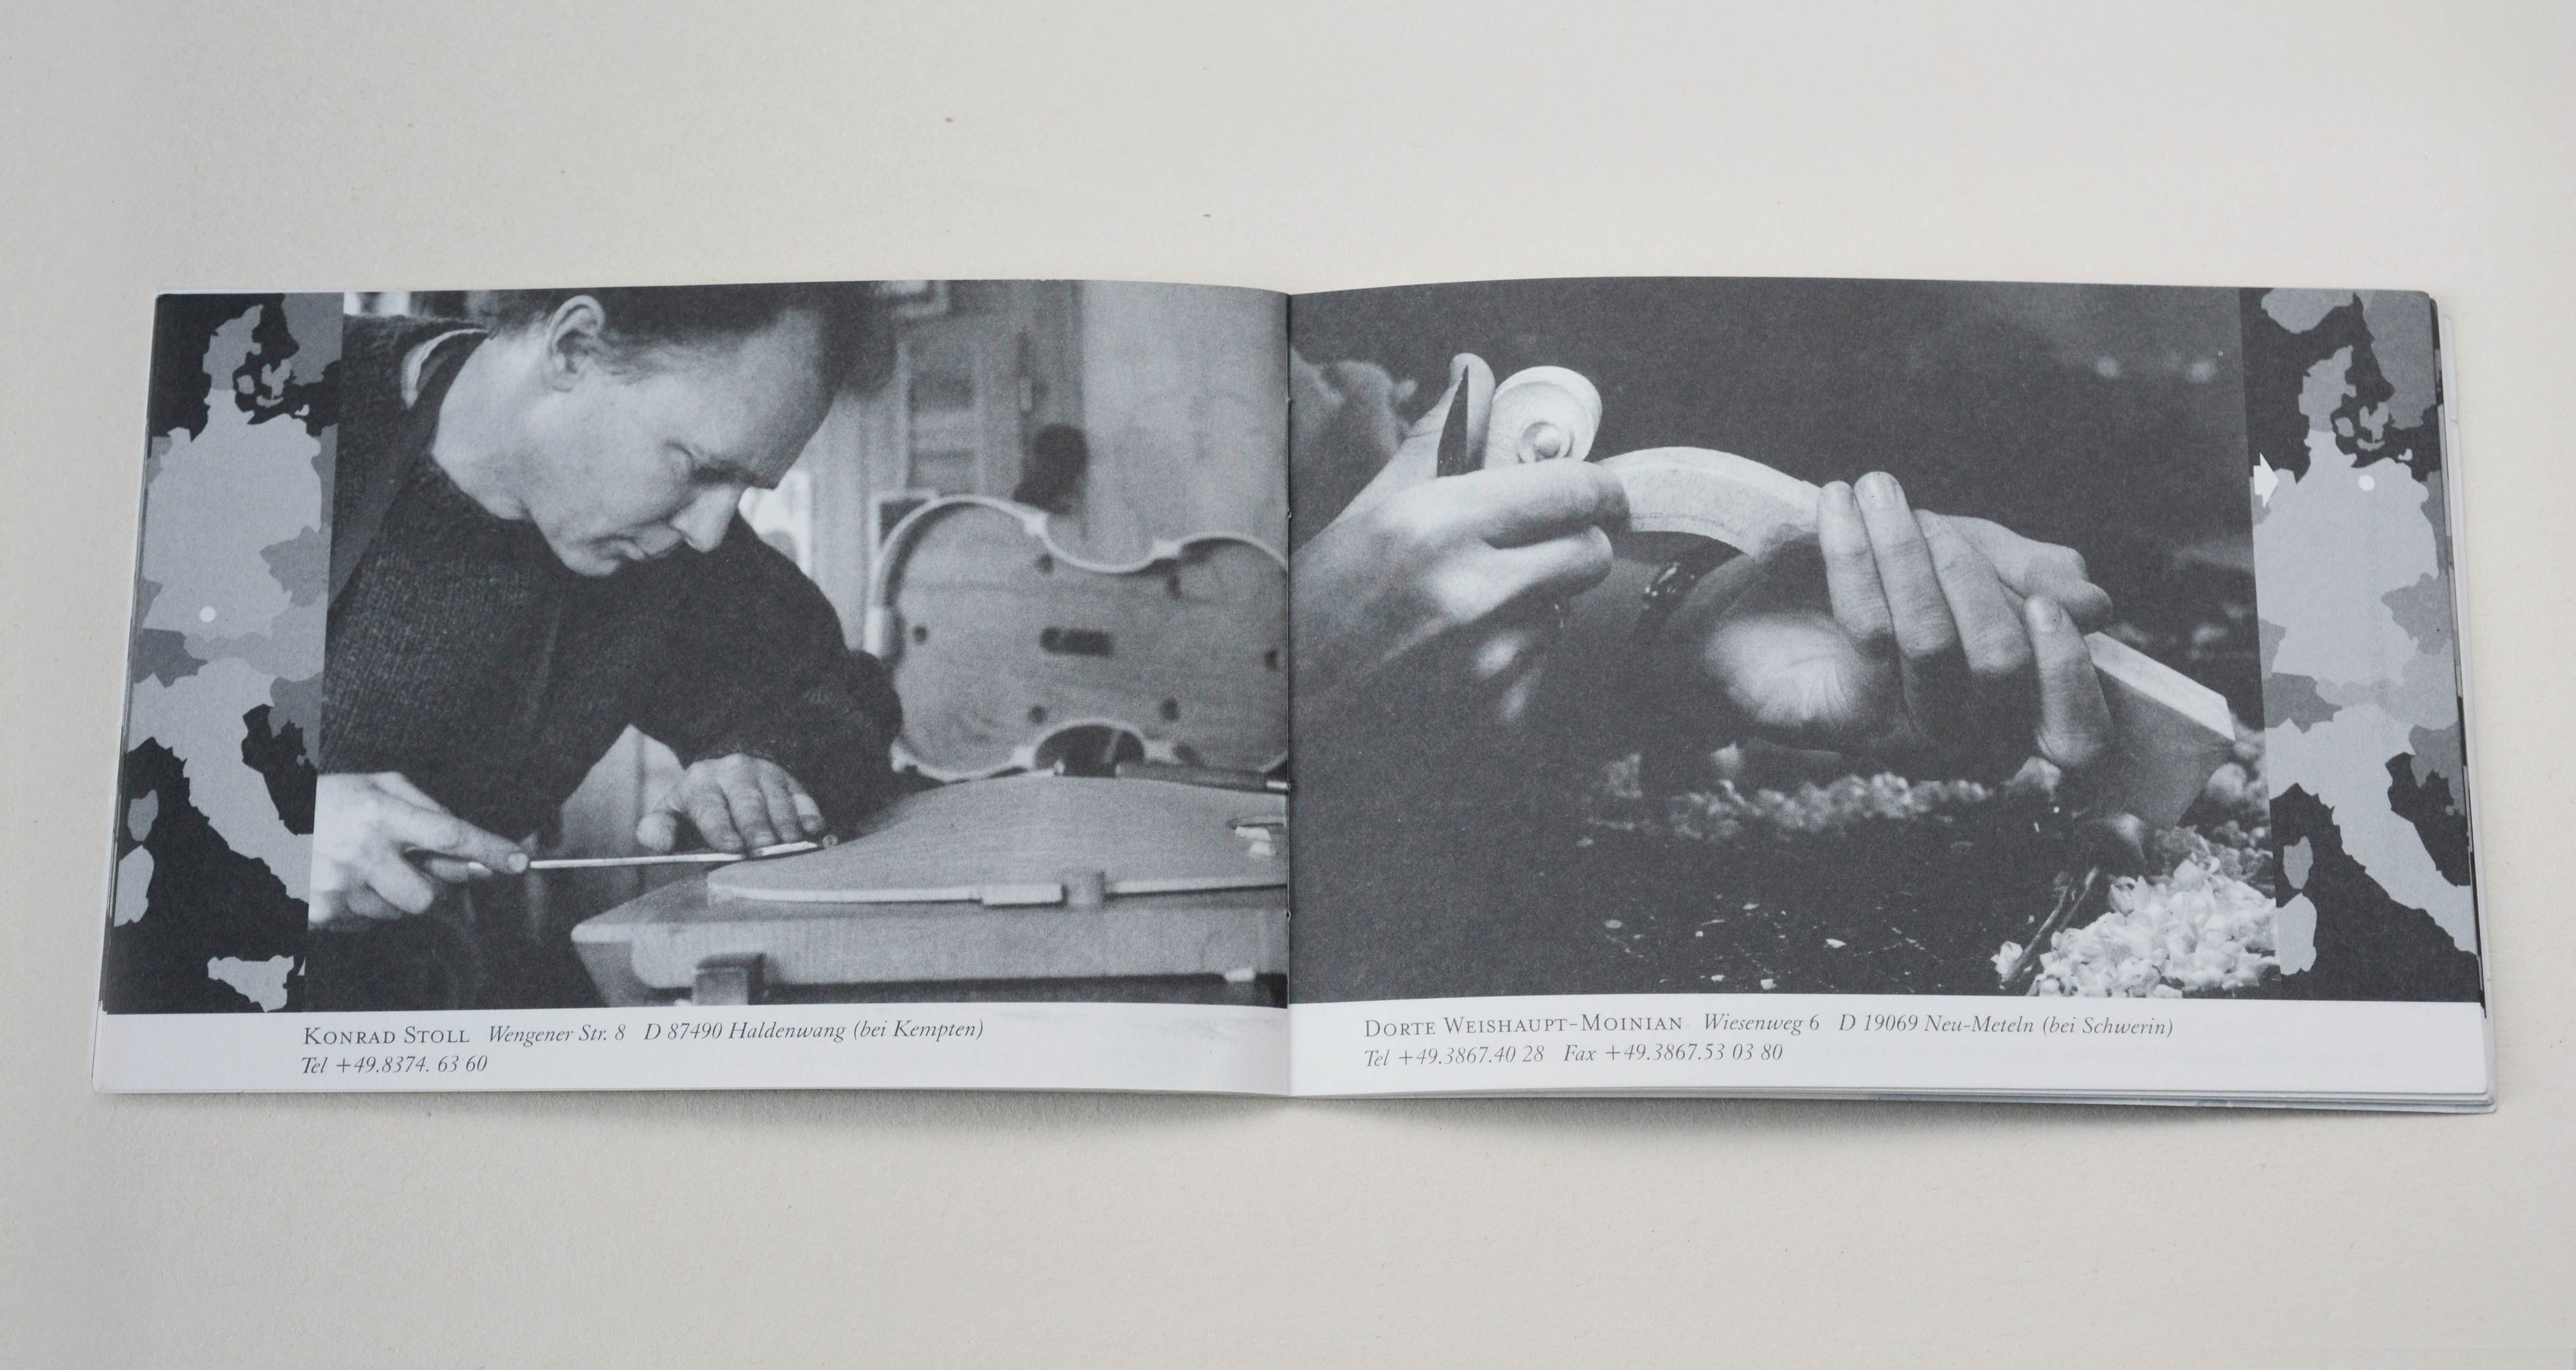 Double page. On each page full-page b/w photos. Column-sized map with marking point at the edges covering part of photo. Line of small text in white space underneath. Left: Man carving on top plate of violin. Right: 2 hands hold violin scroll.